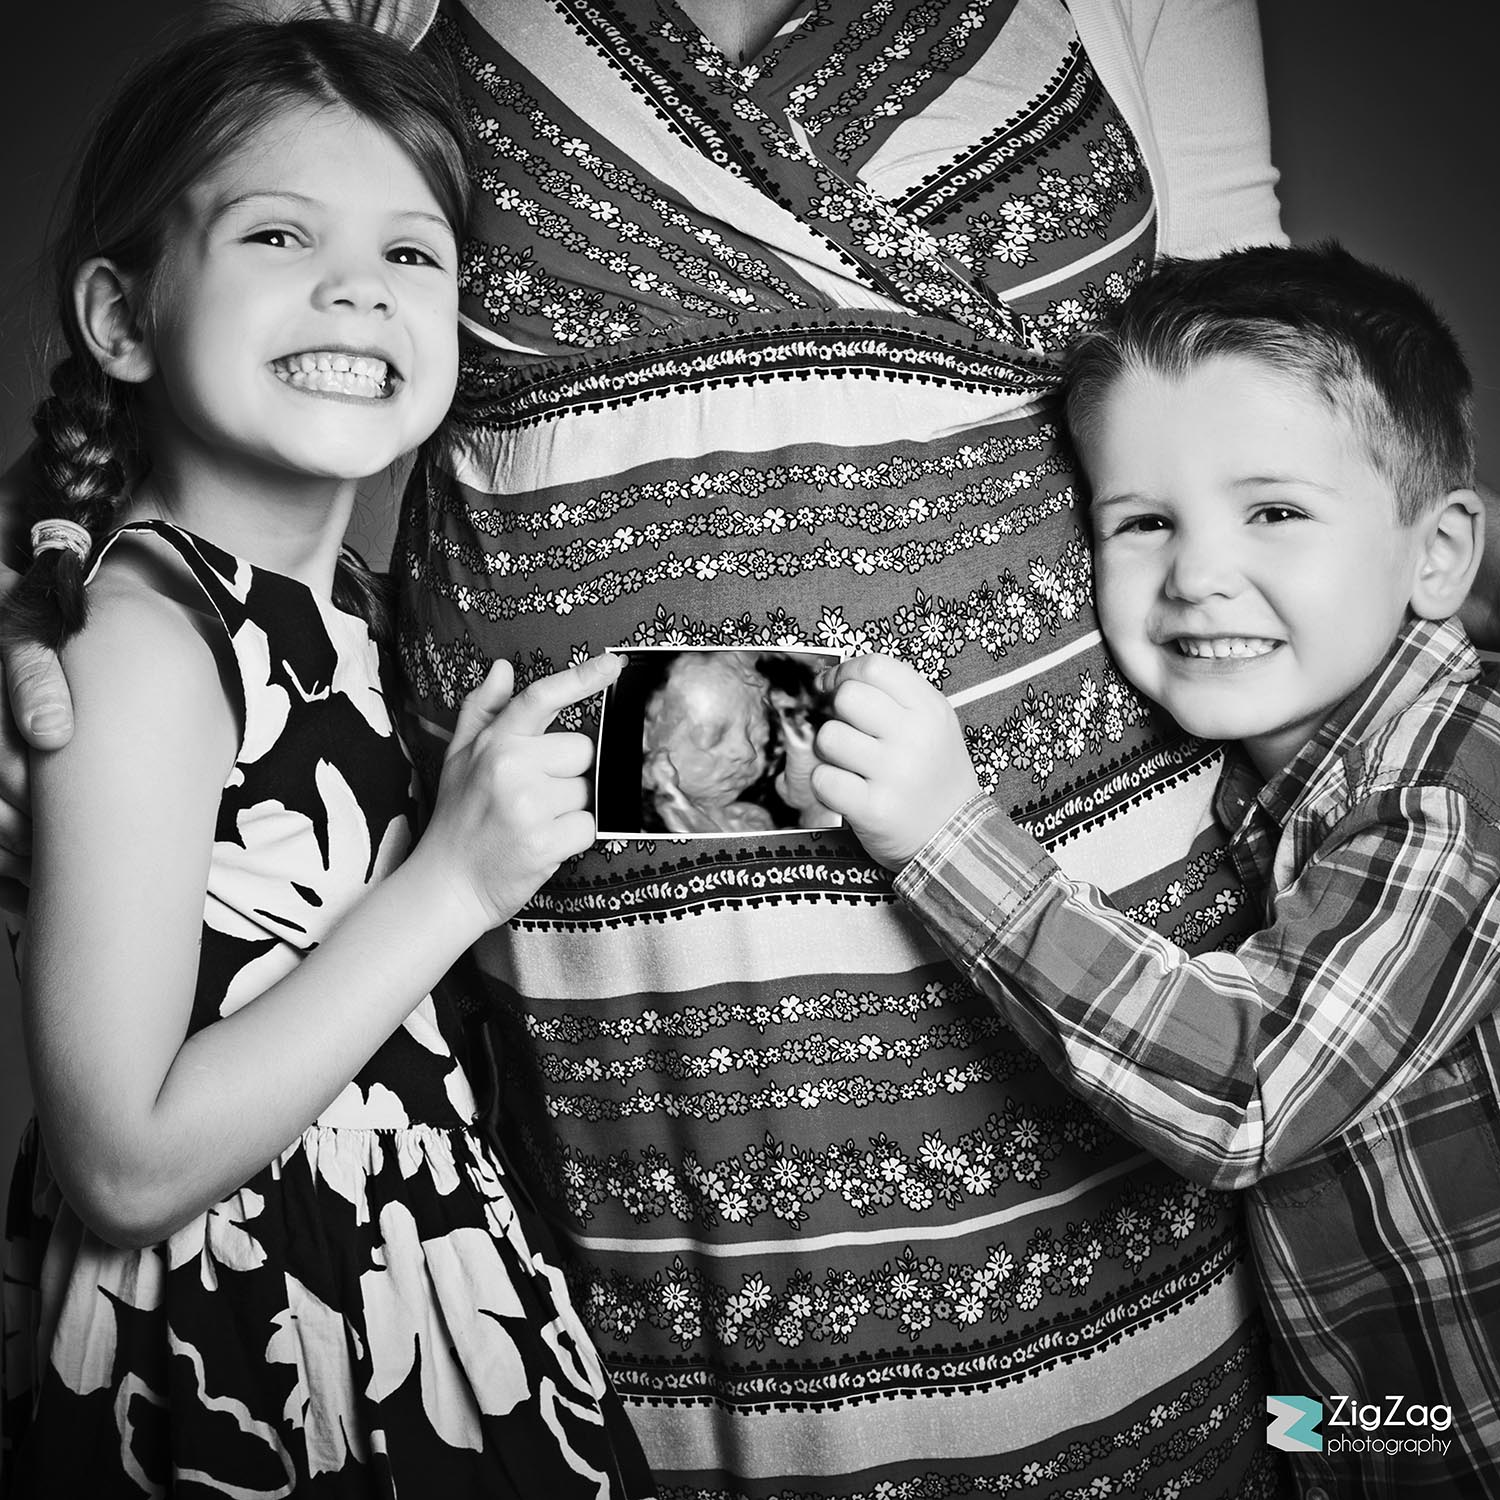 zig-zag-photography-leicester-window-to-the-womb-3d-baby-scan-photo-props-ideas-maternity-newborn-prenatal-family.jpg.jpg